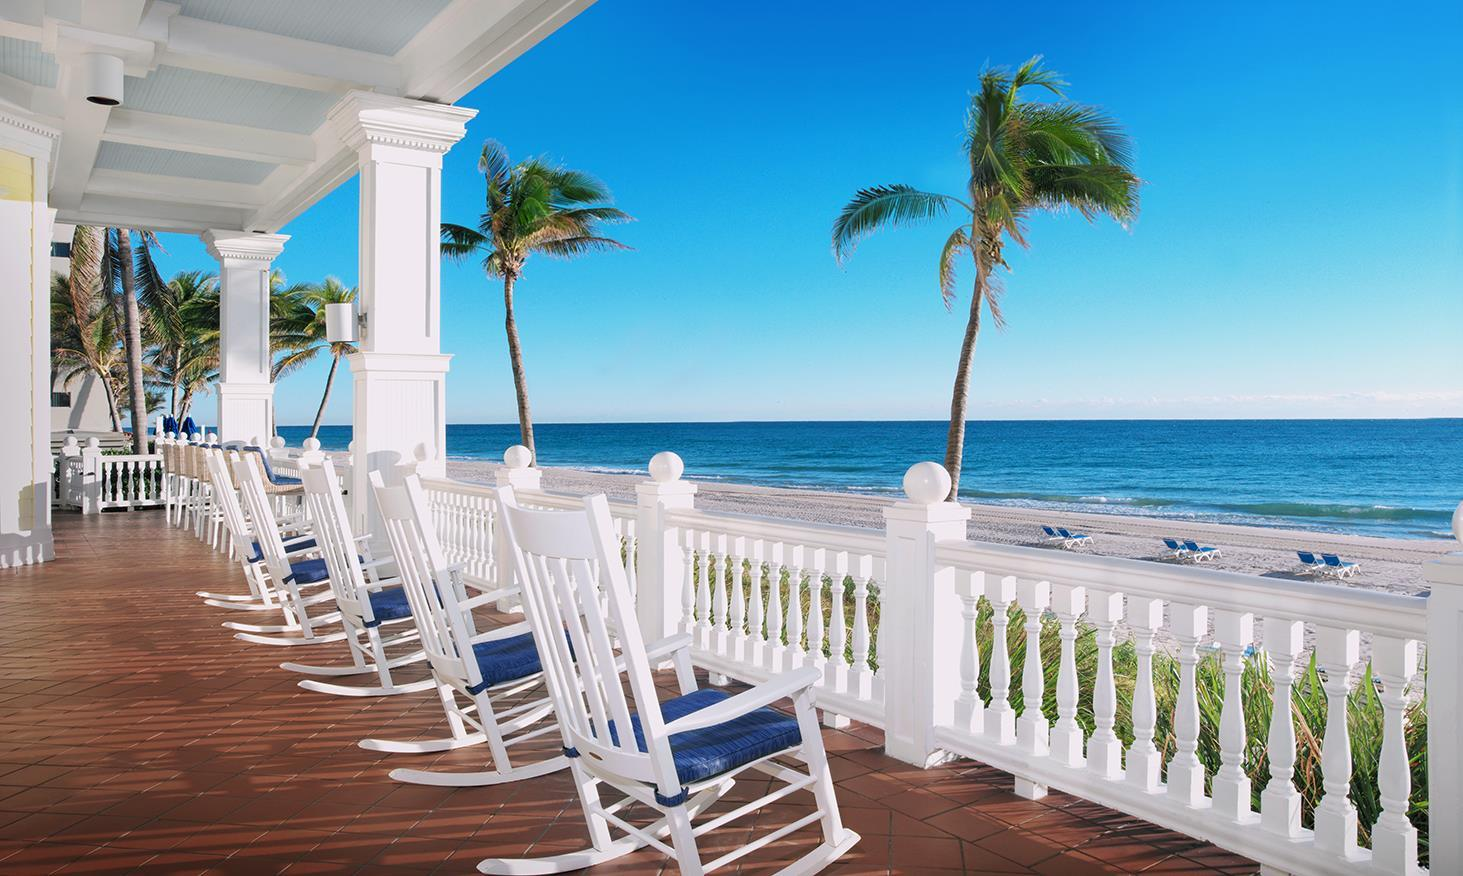 The 10 best hotels in Fort Lauderdale